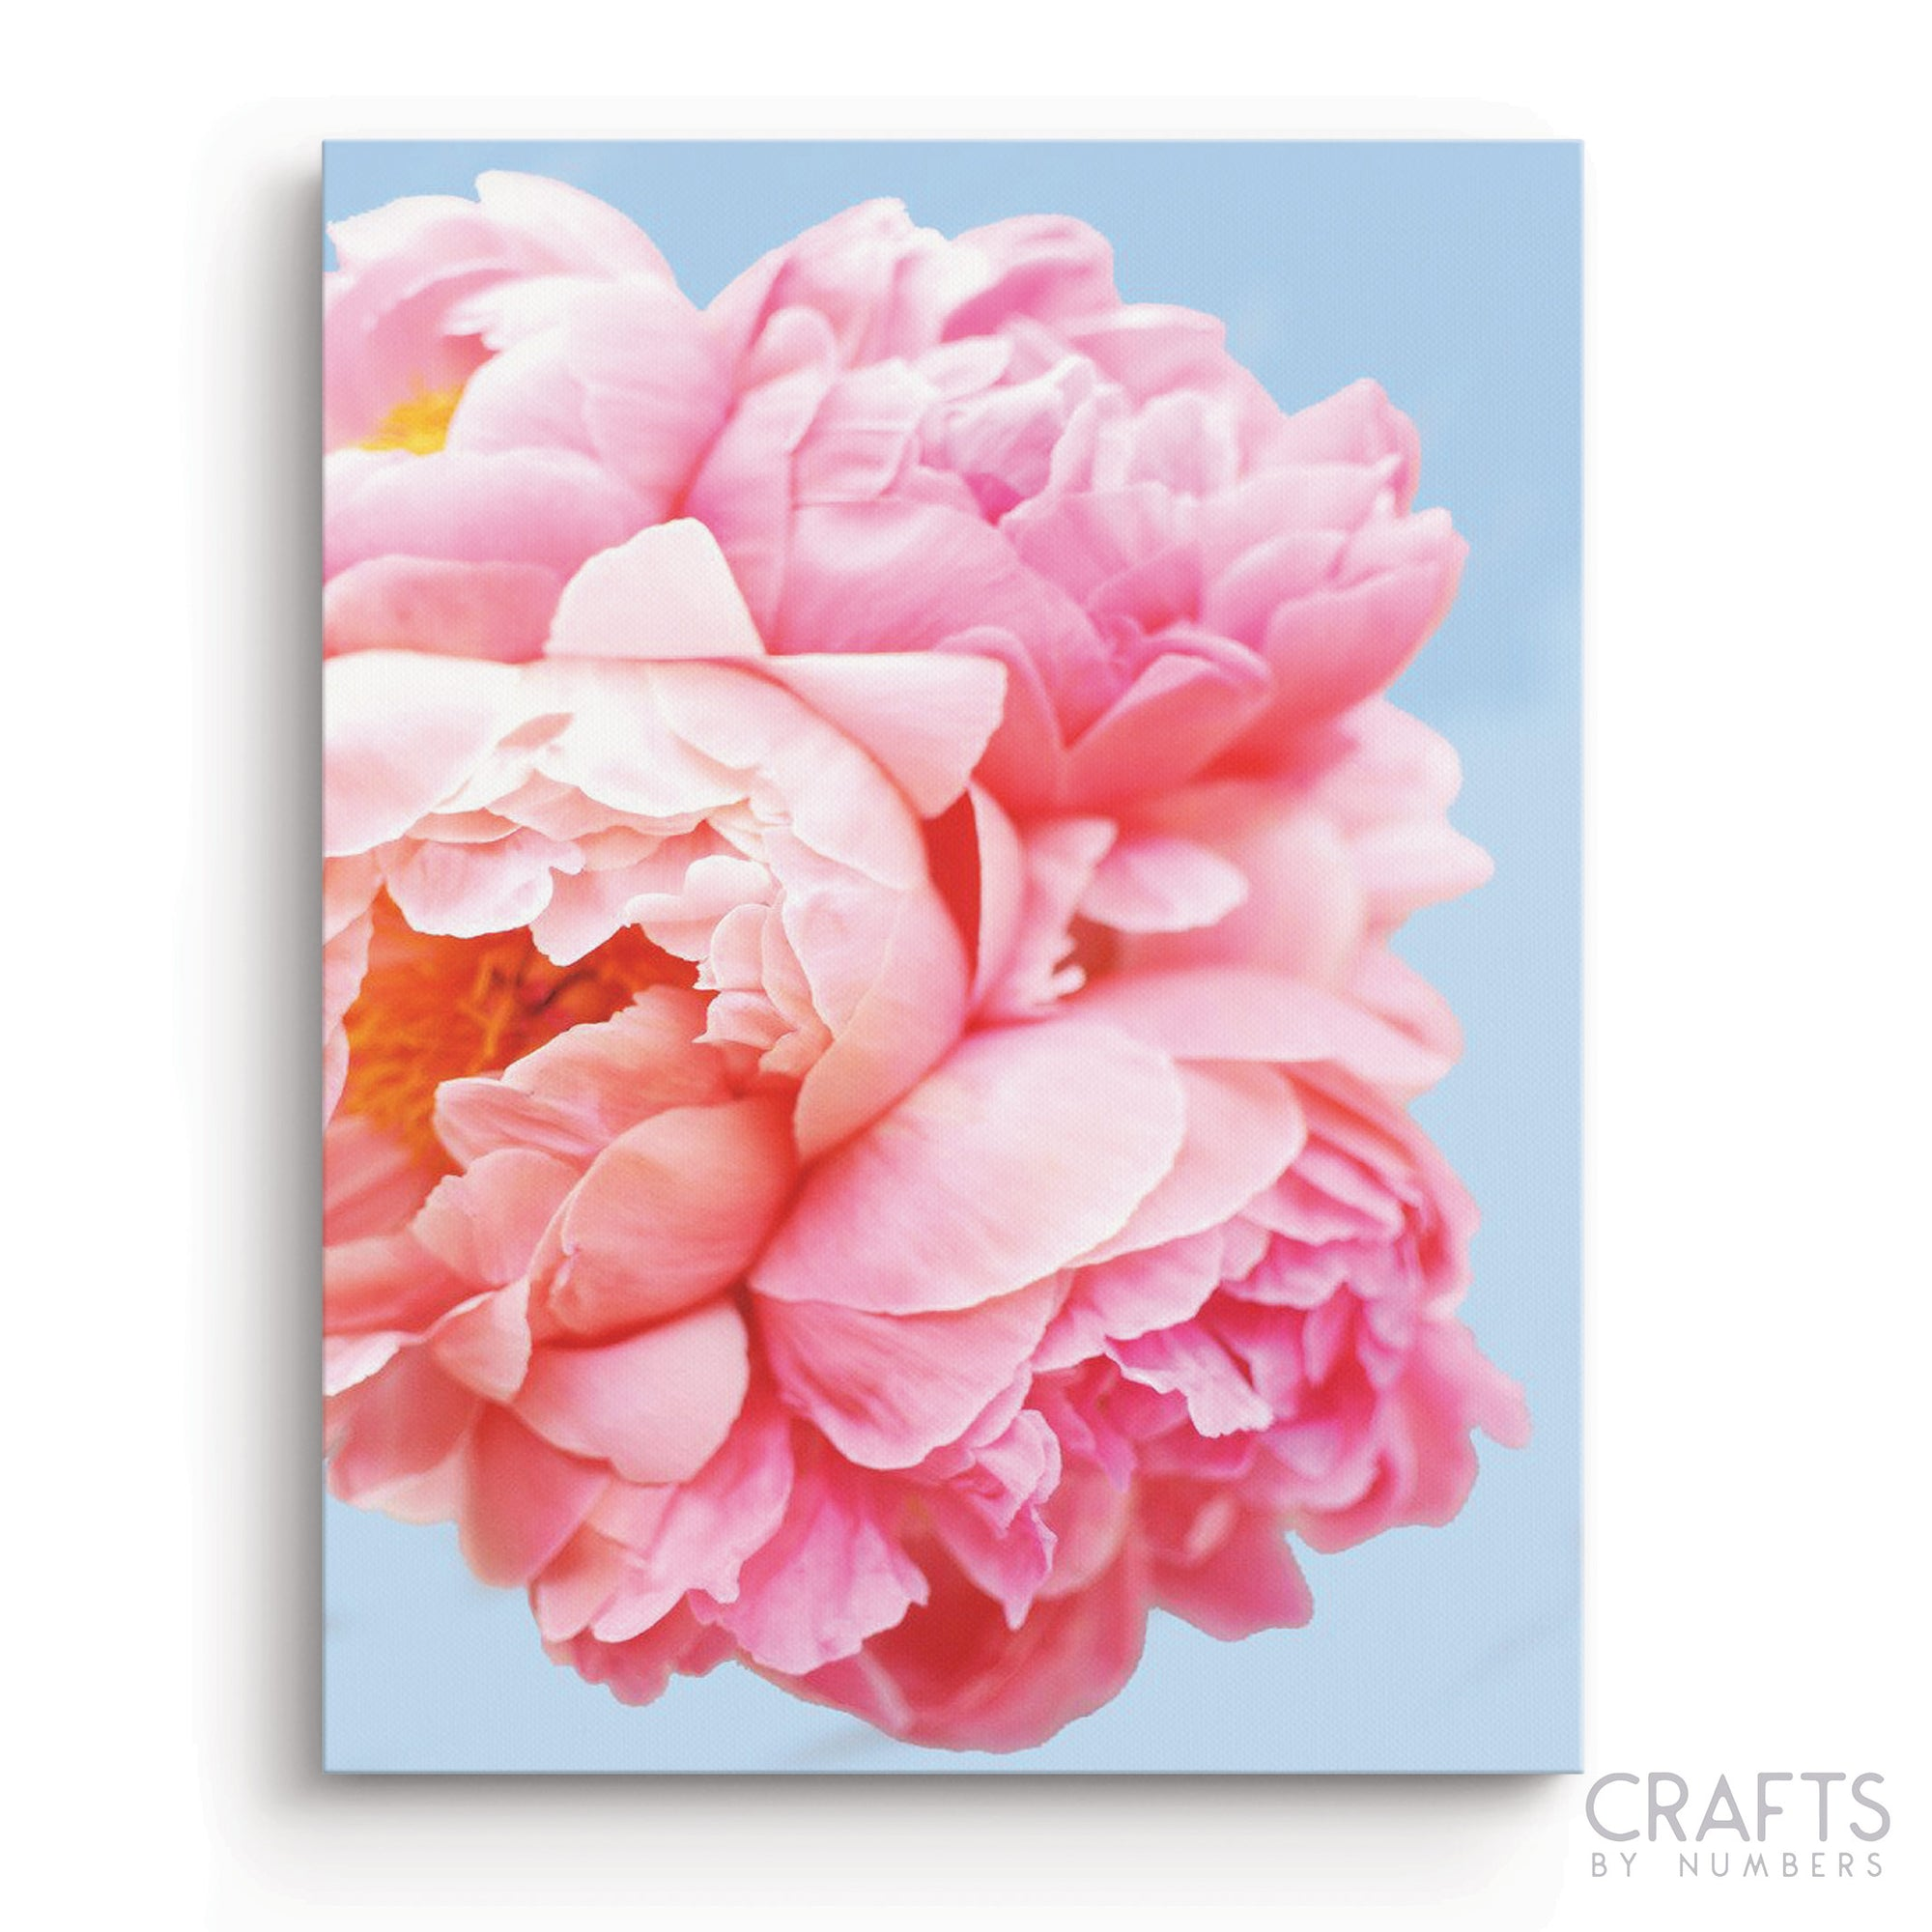 Pink Floral Art paint by numbers canvas for adults from paint pots